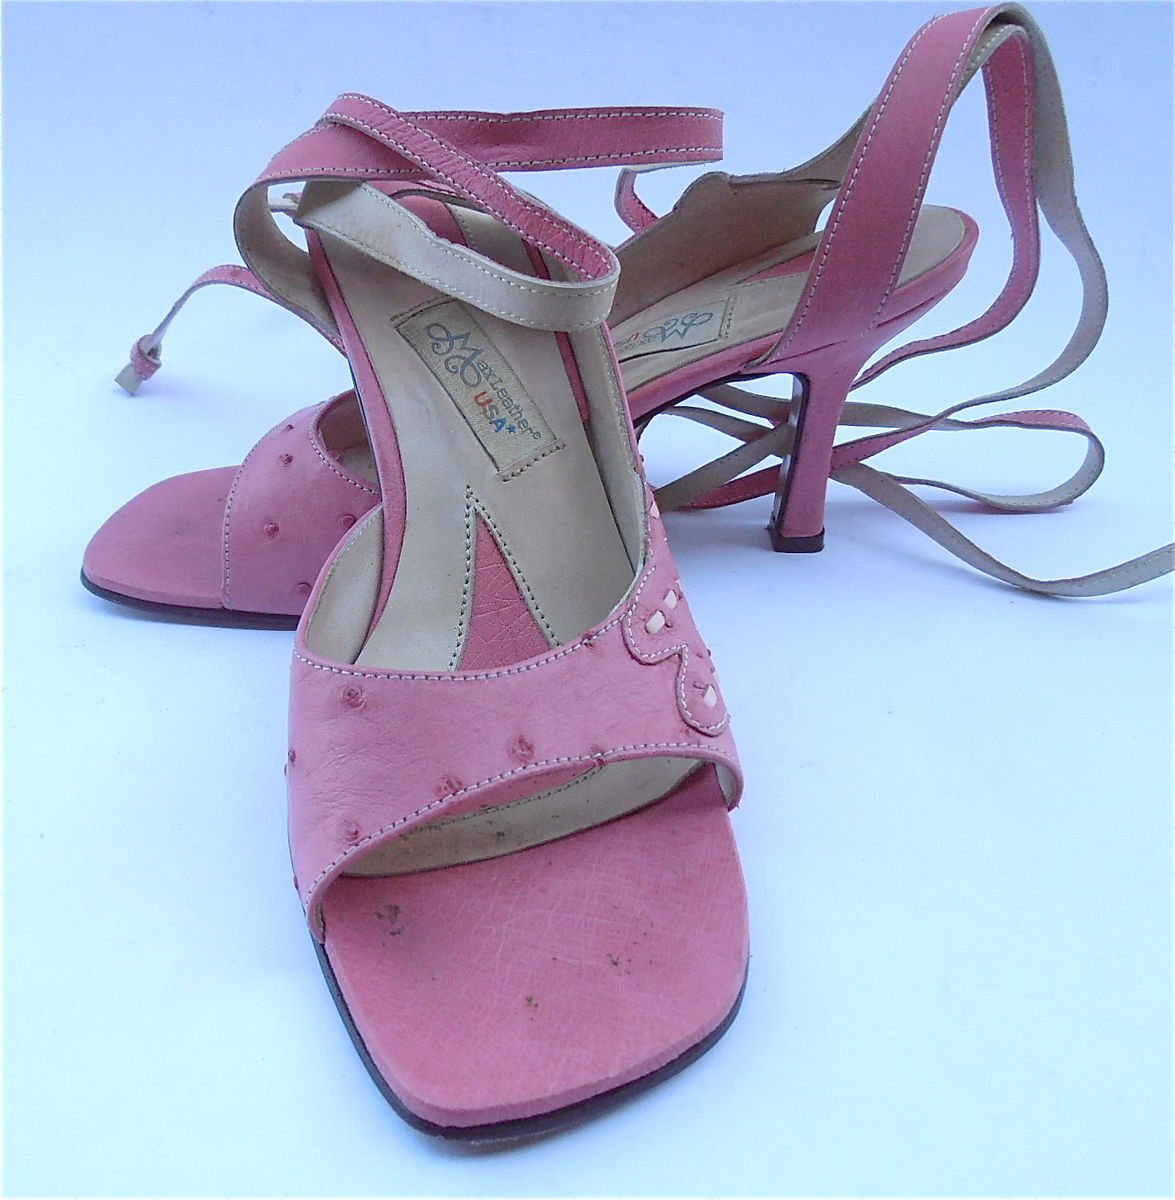 Preowned Pink Genuine Ostrich Leather Shoes Wrap Around Ankle Tie On Straps Open Toe High Heels Sandals Exotic Ladies Women Size 7 EU 37.5  - product images  of